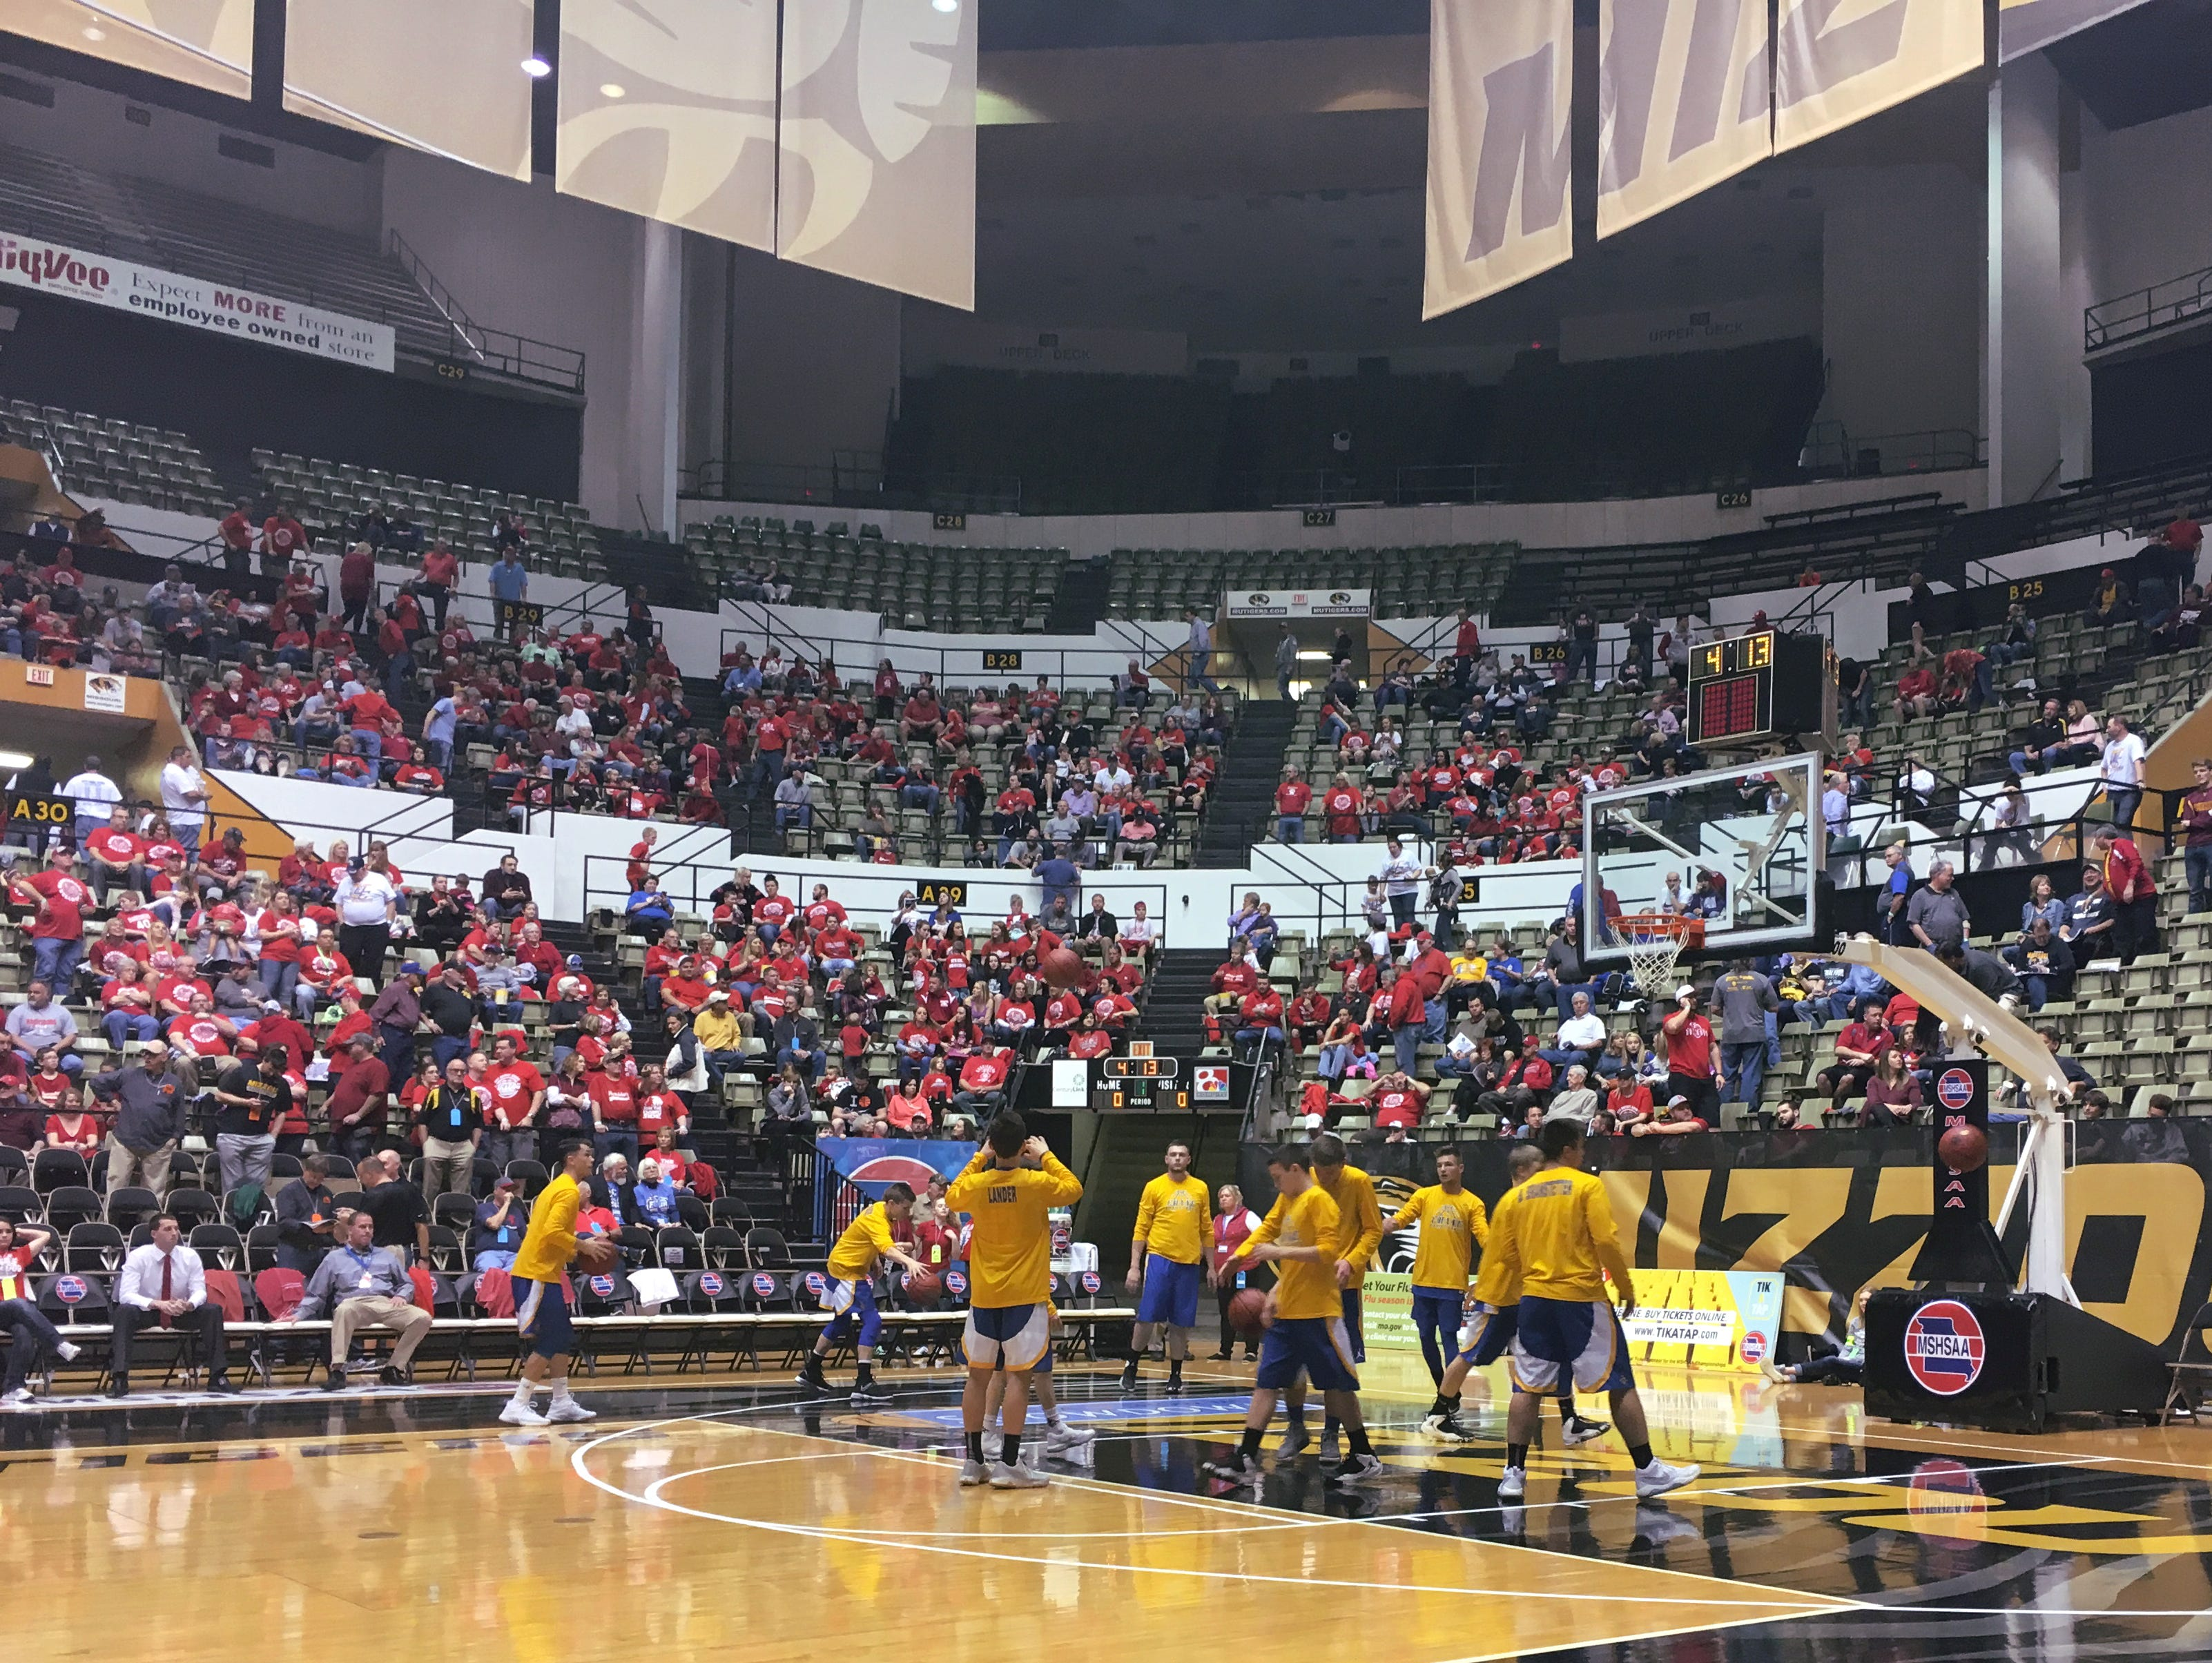 Crane's boys basketball team warms up for a 2017 Class 2 playoff semifinal game against Harrisburg at the Hearnes Center in Columbia.